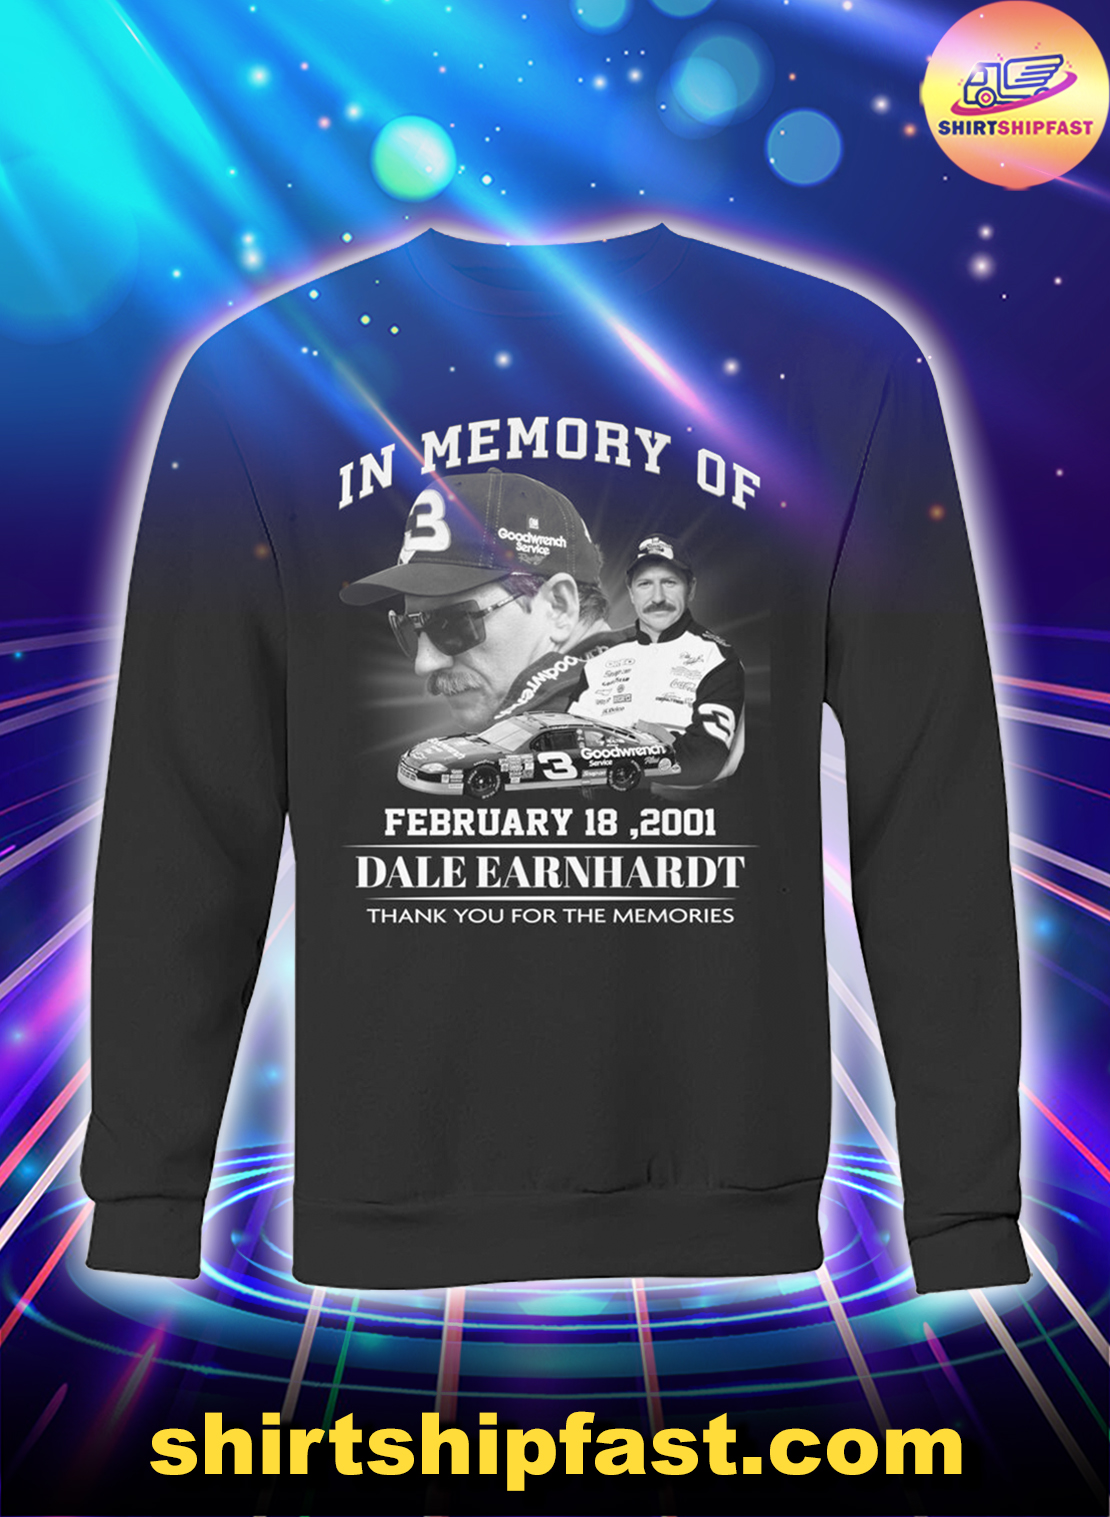 In memory of February 18 2001 Dale Earnhardt thank you for the memories sweatshirt